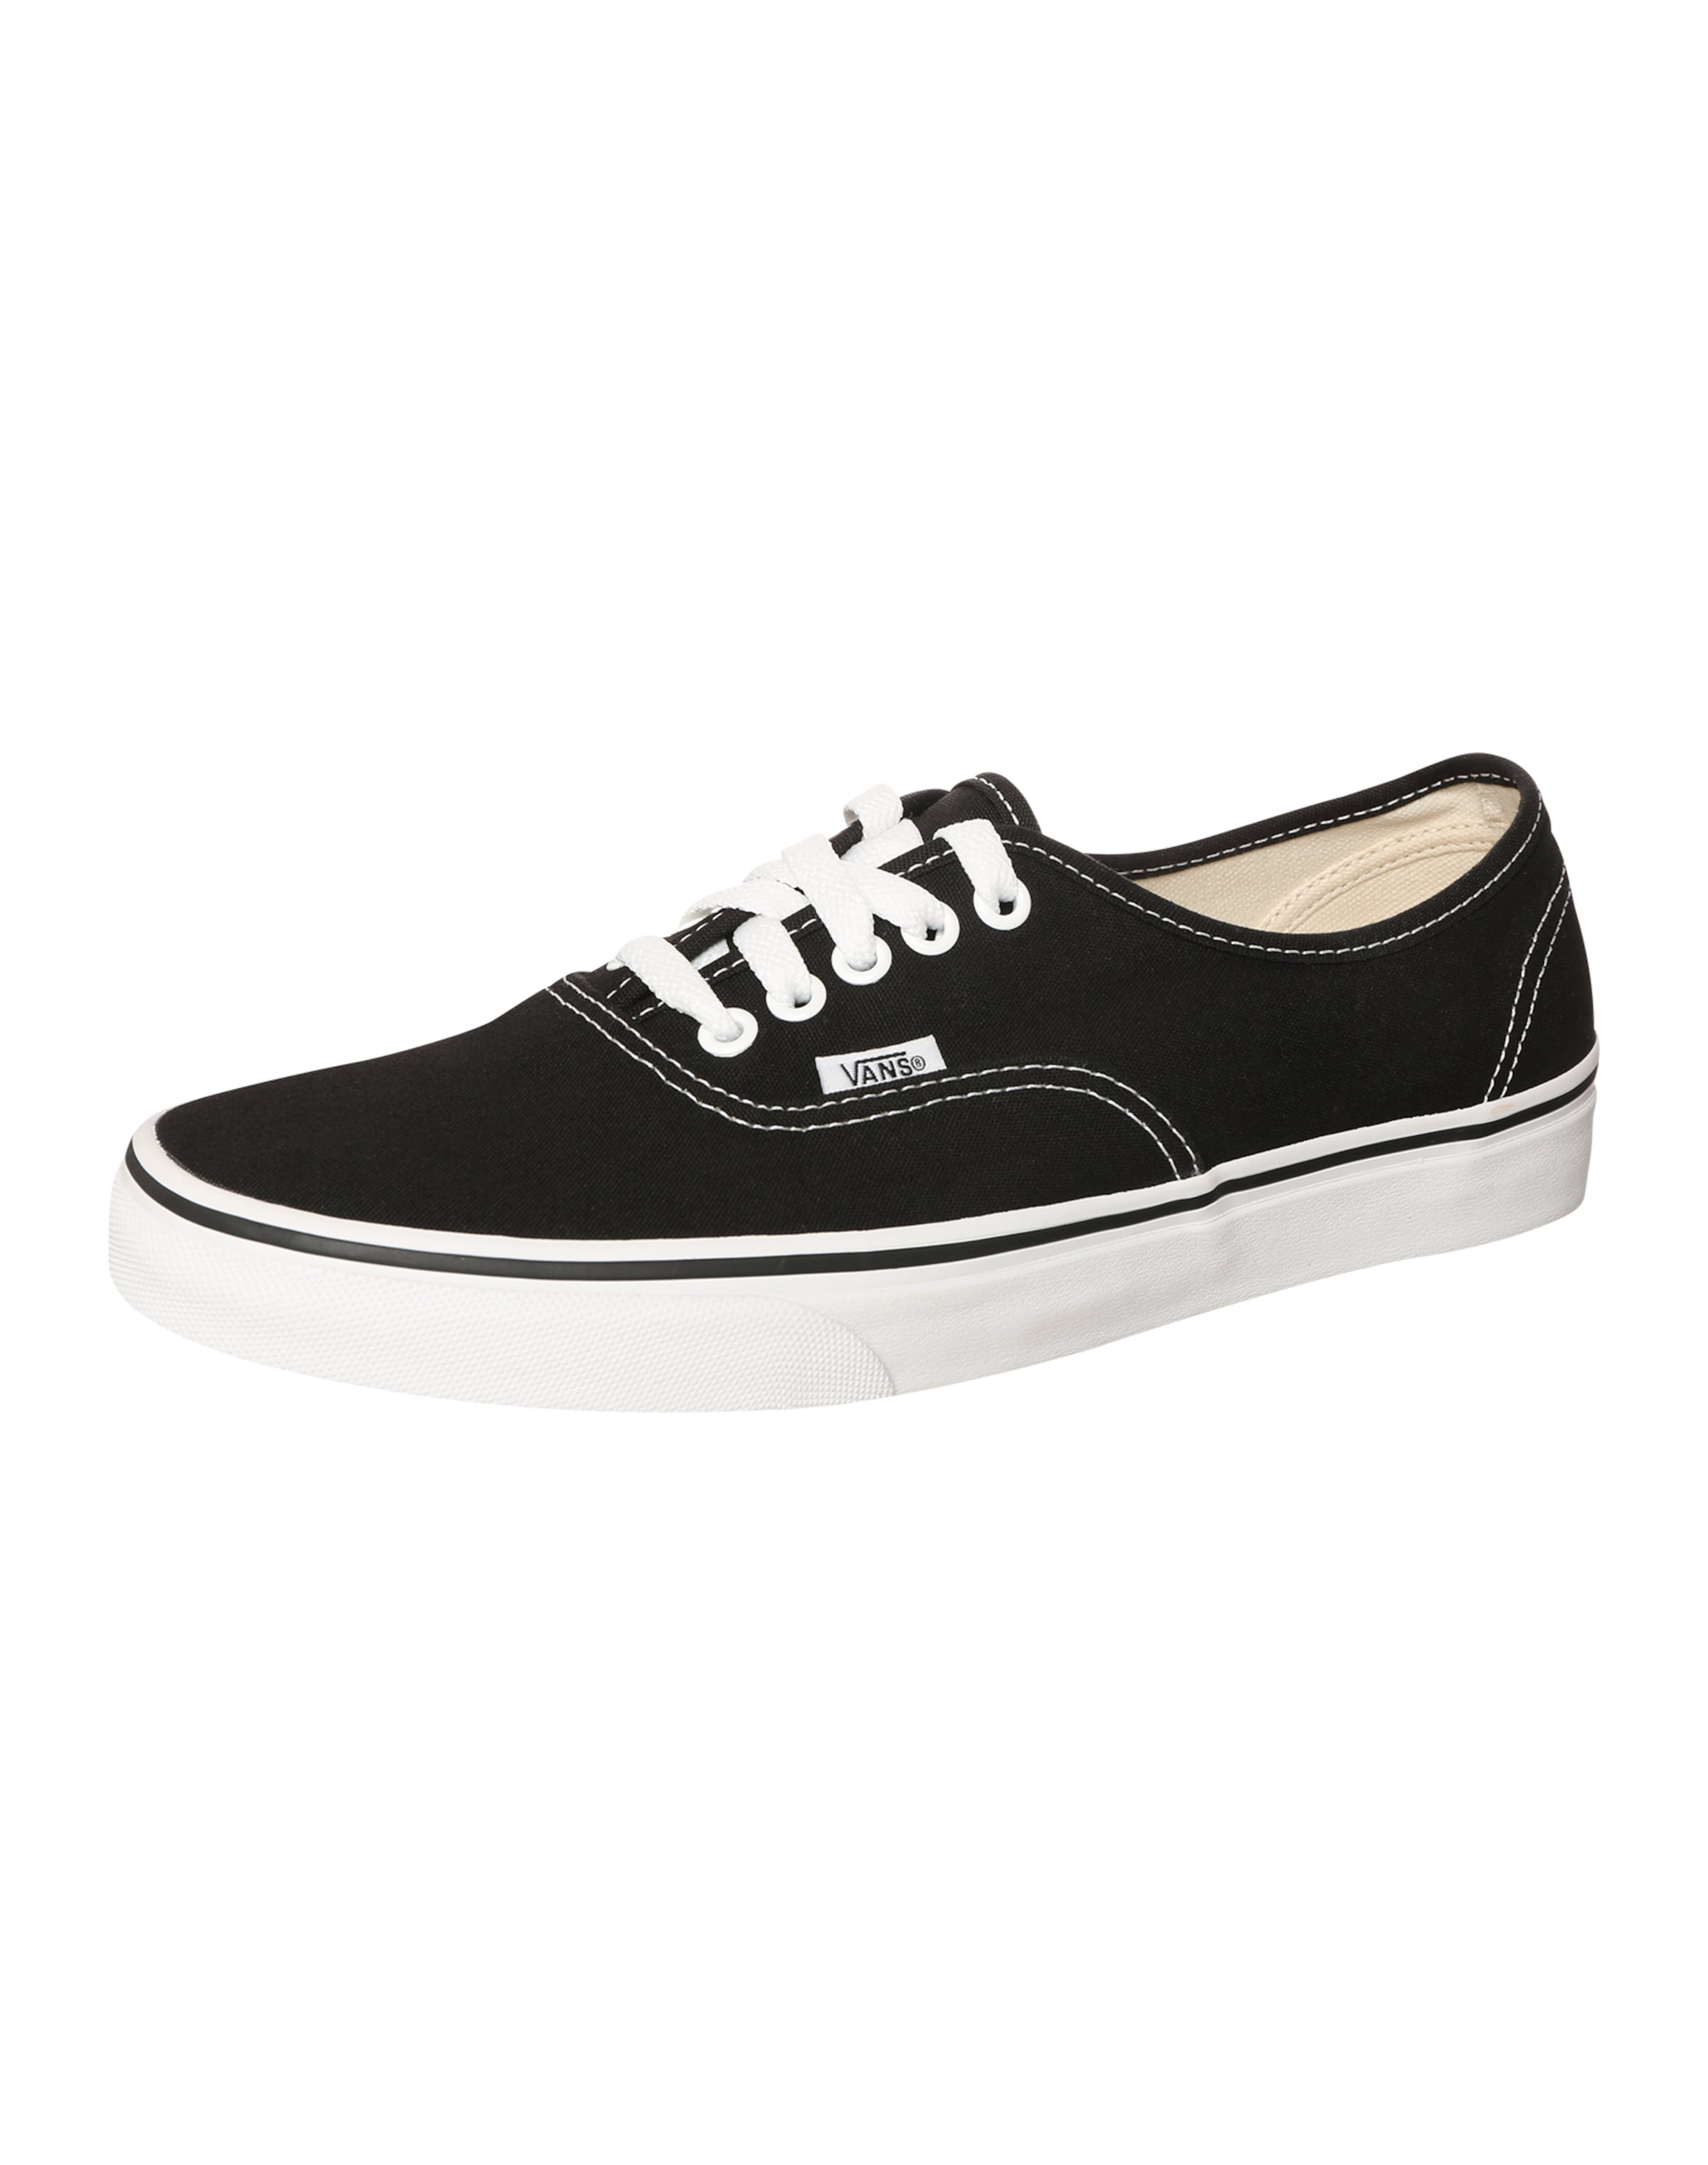 Schwarz 'authentic' Sneaker Sneaker In Vans Sneaker Vans 'authentic' Schwarz 'authentic' In Vans ygvYbf67